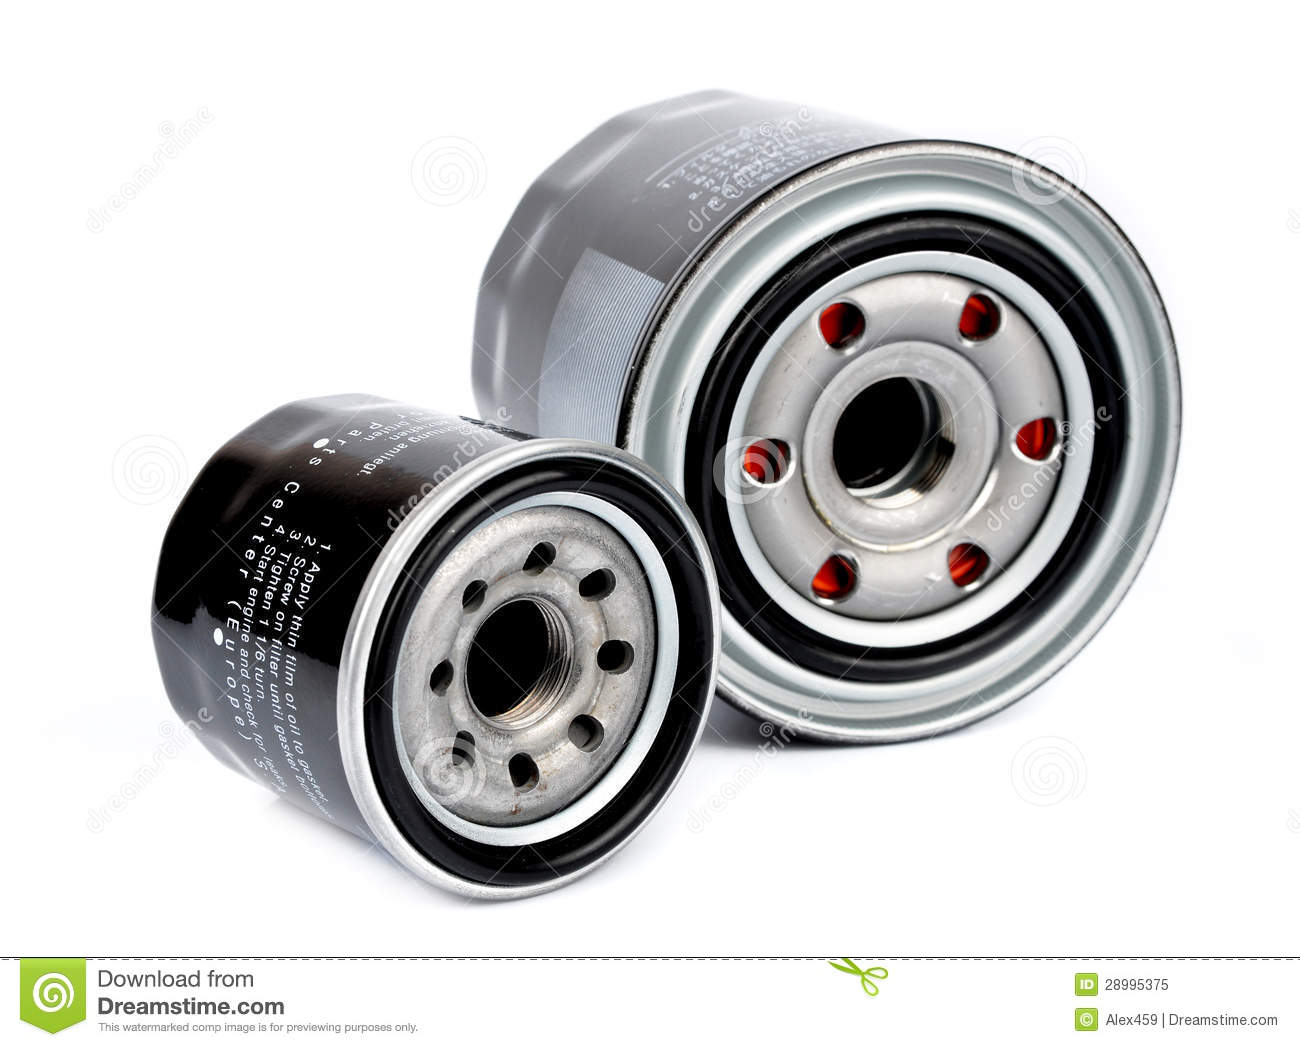 Car engine oil filter stock image image of black clean for Motor oil for my car